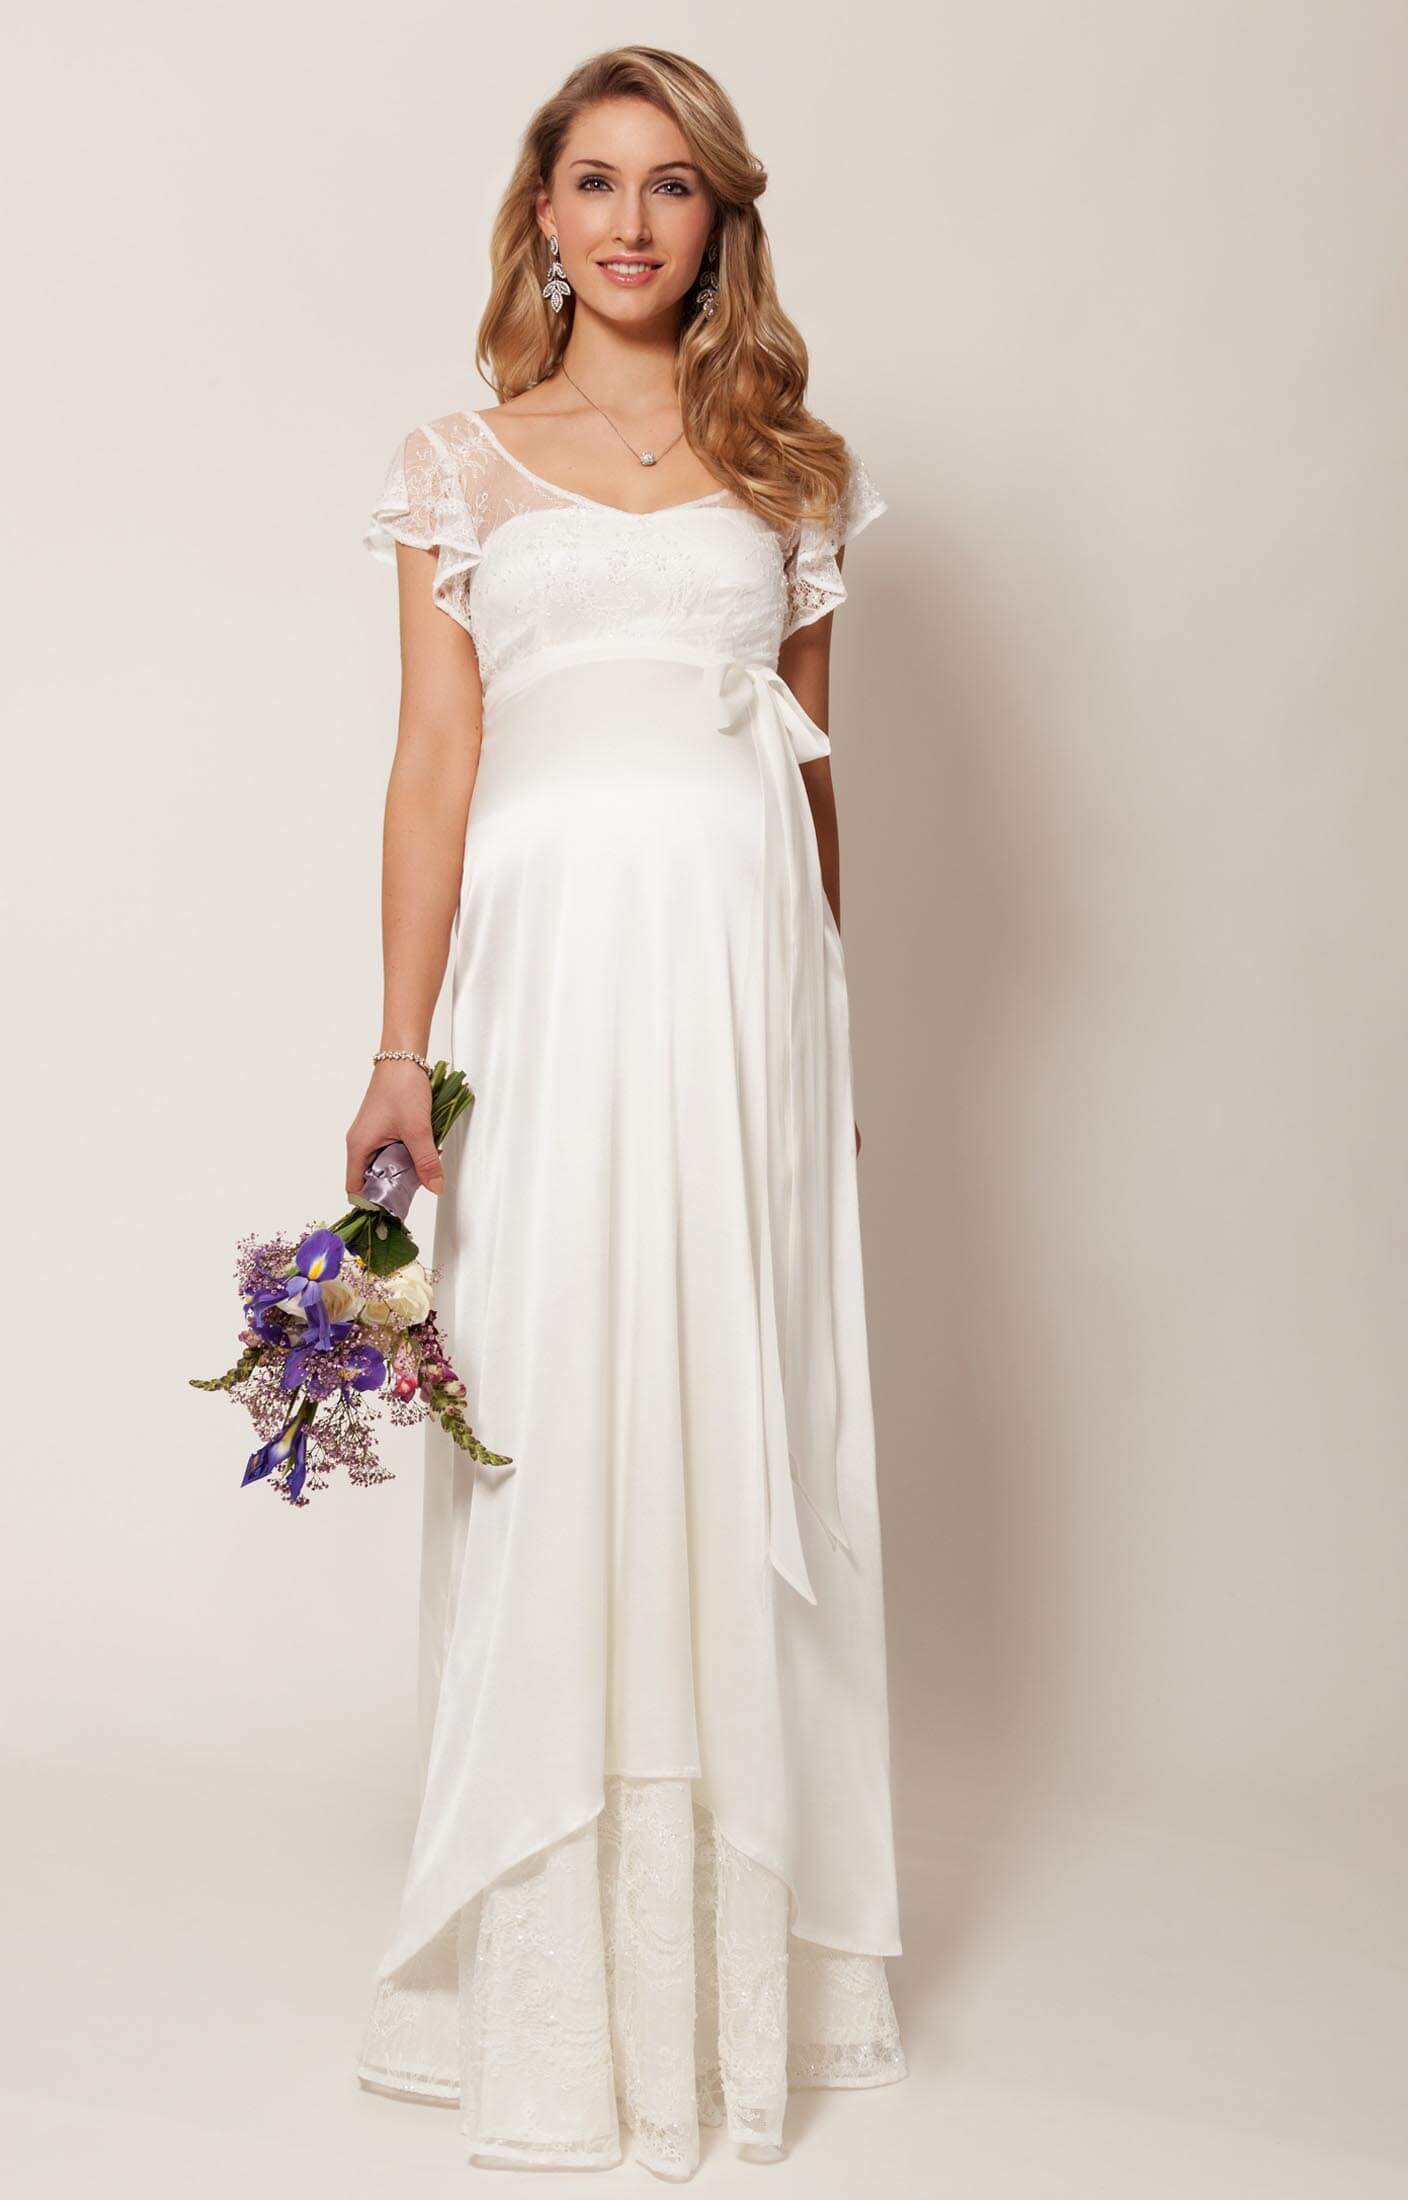 Wedding Dresses for the Pregnant Bride. Make the day you've always dreamed of a reality with a maternity wedding dress from our collection. Some maternity bridal dresses provide a flowy, elegant silhouette, while others offer a closer fit to showcase your pregnant belly.